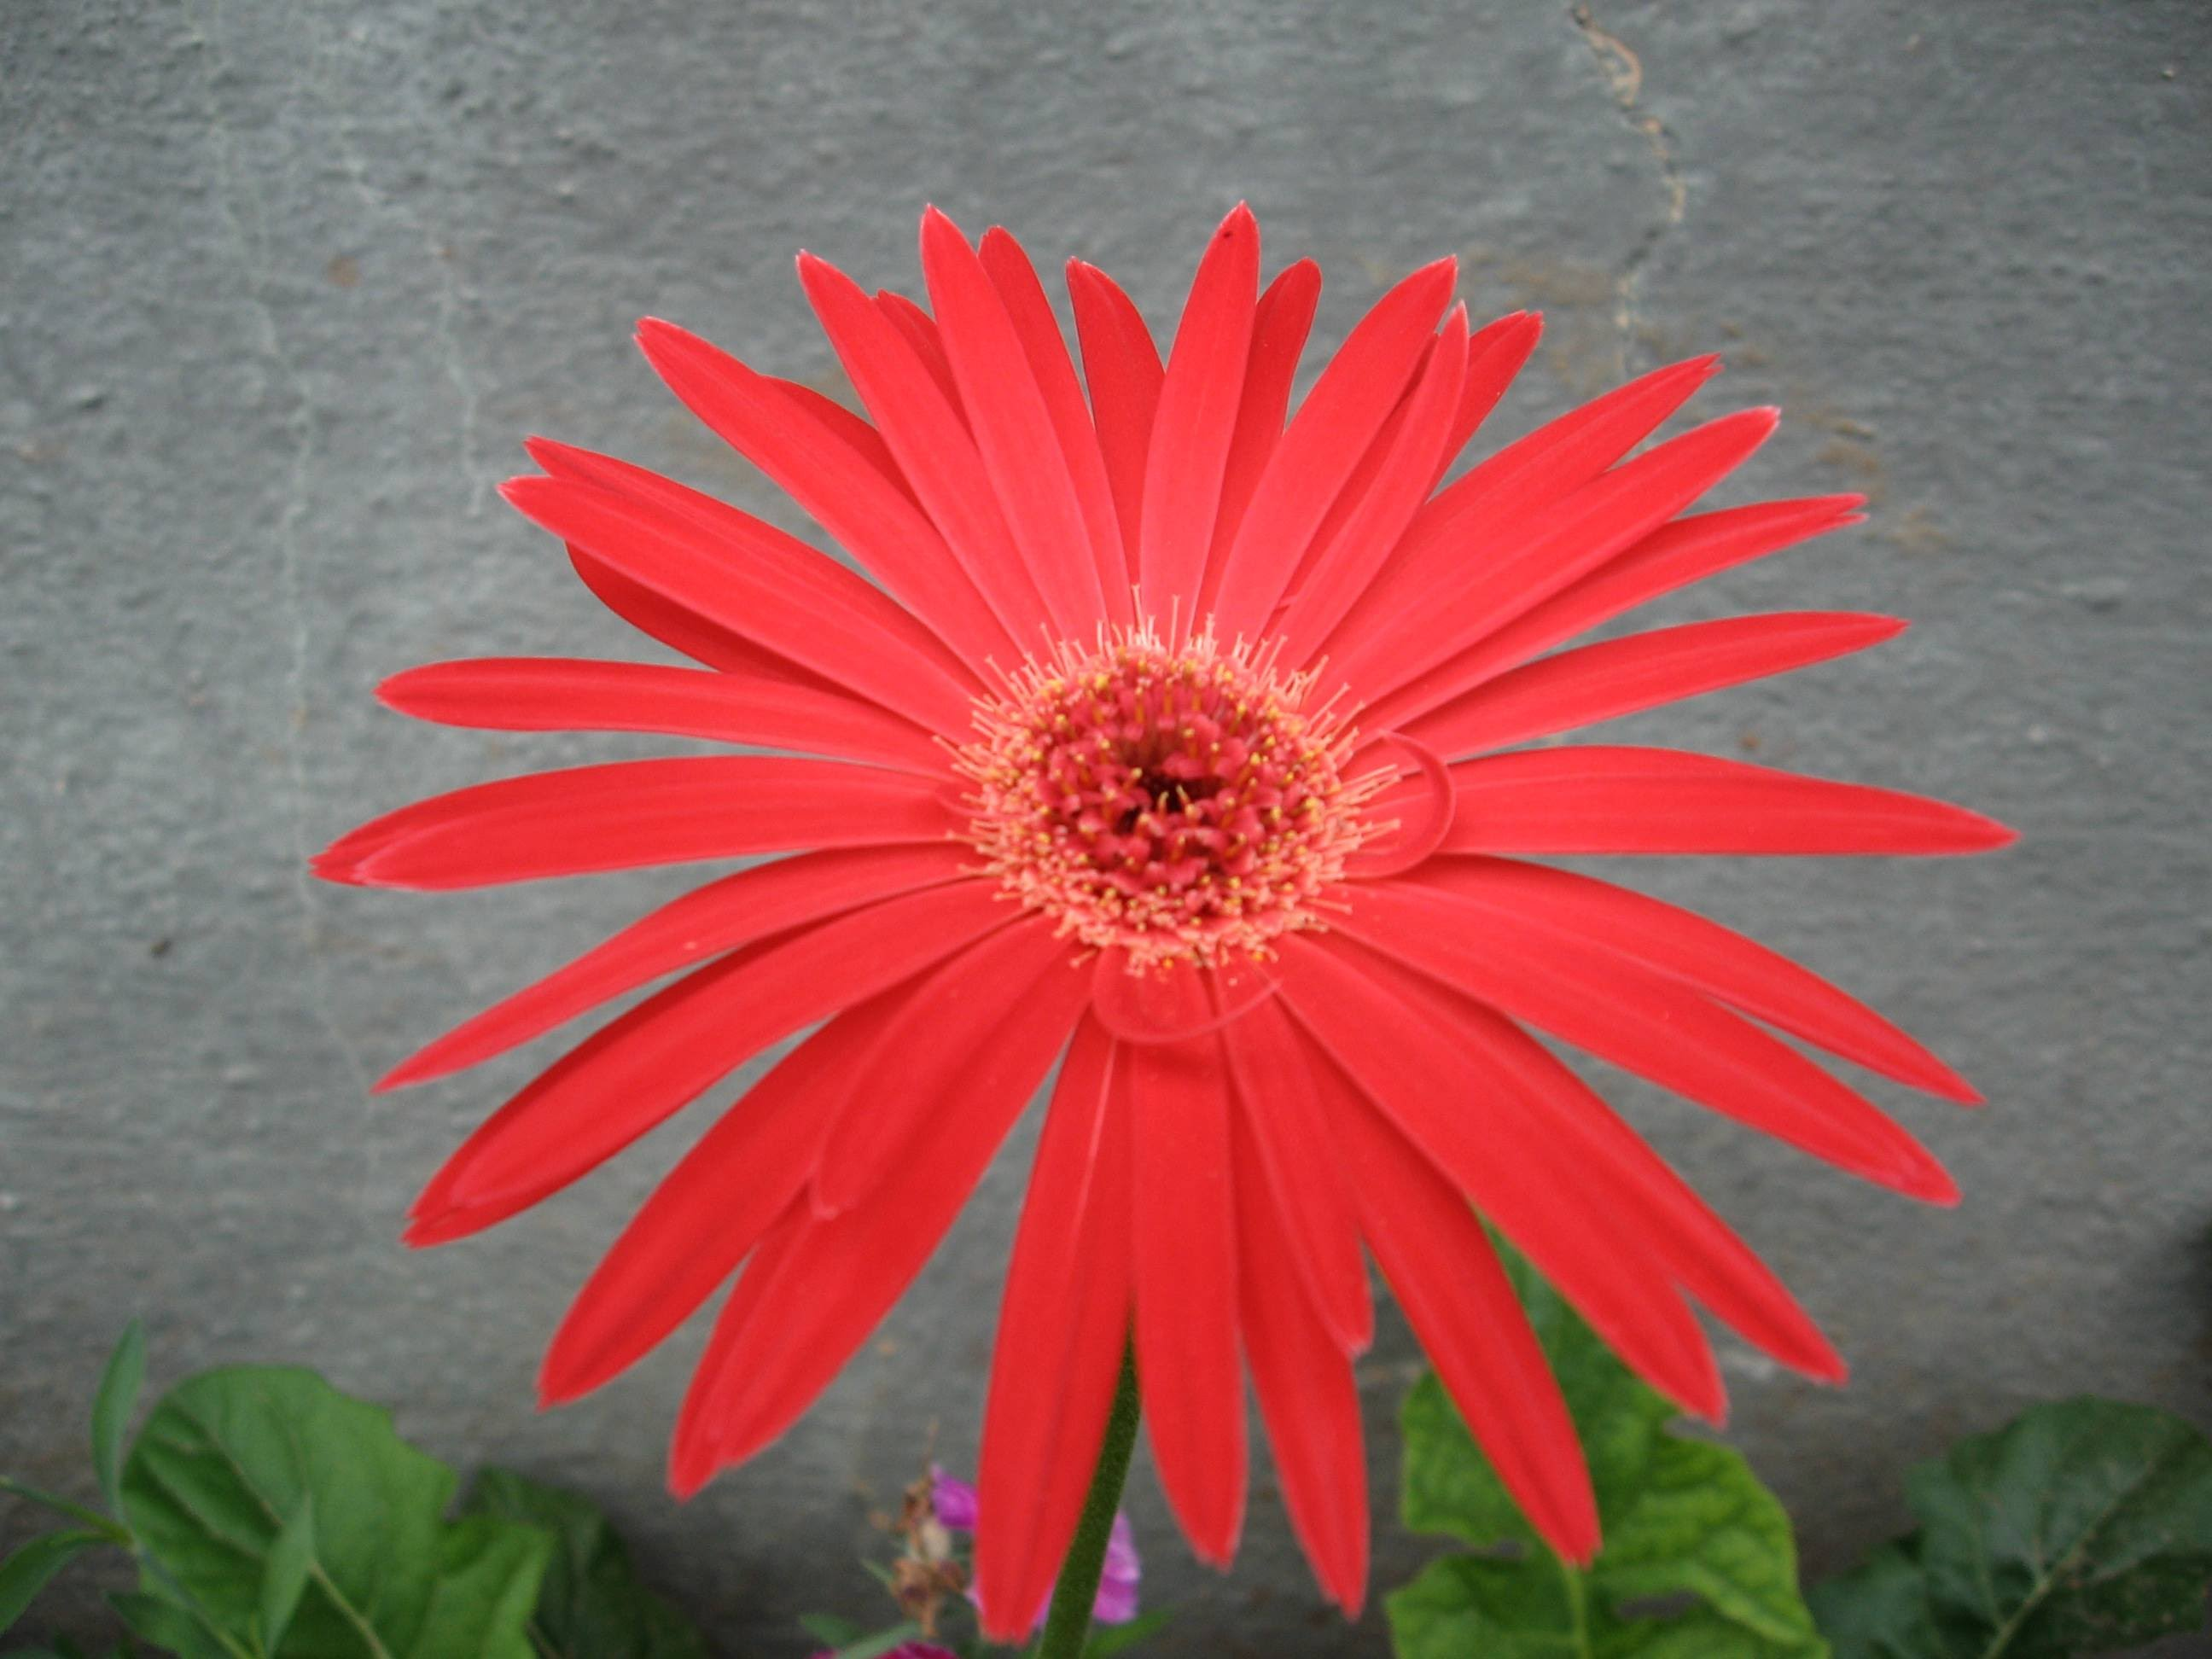 Red Zerbera flower